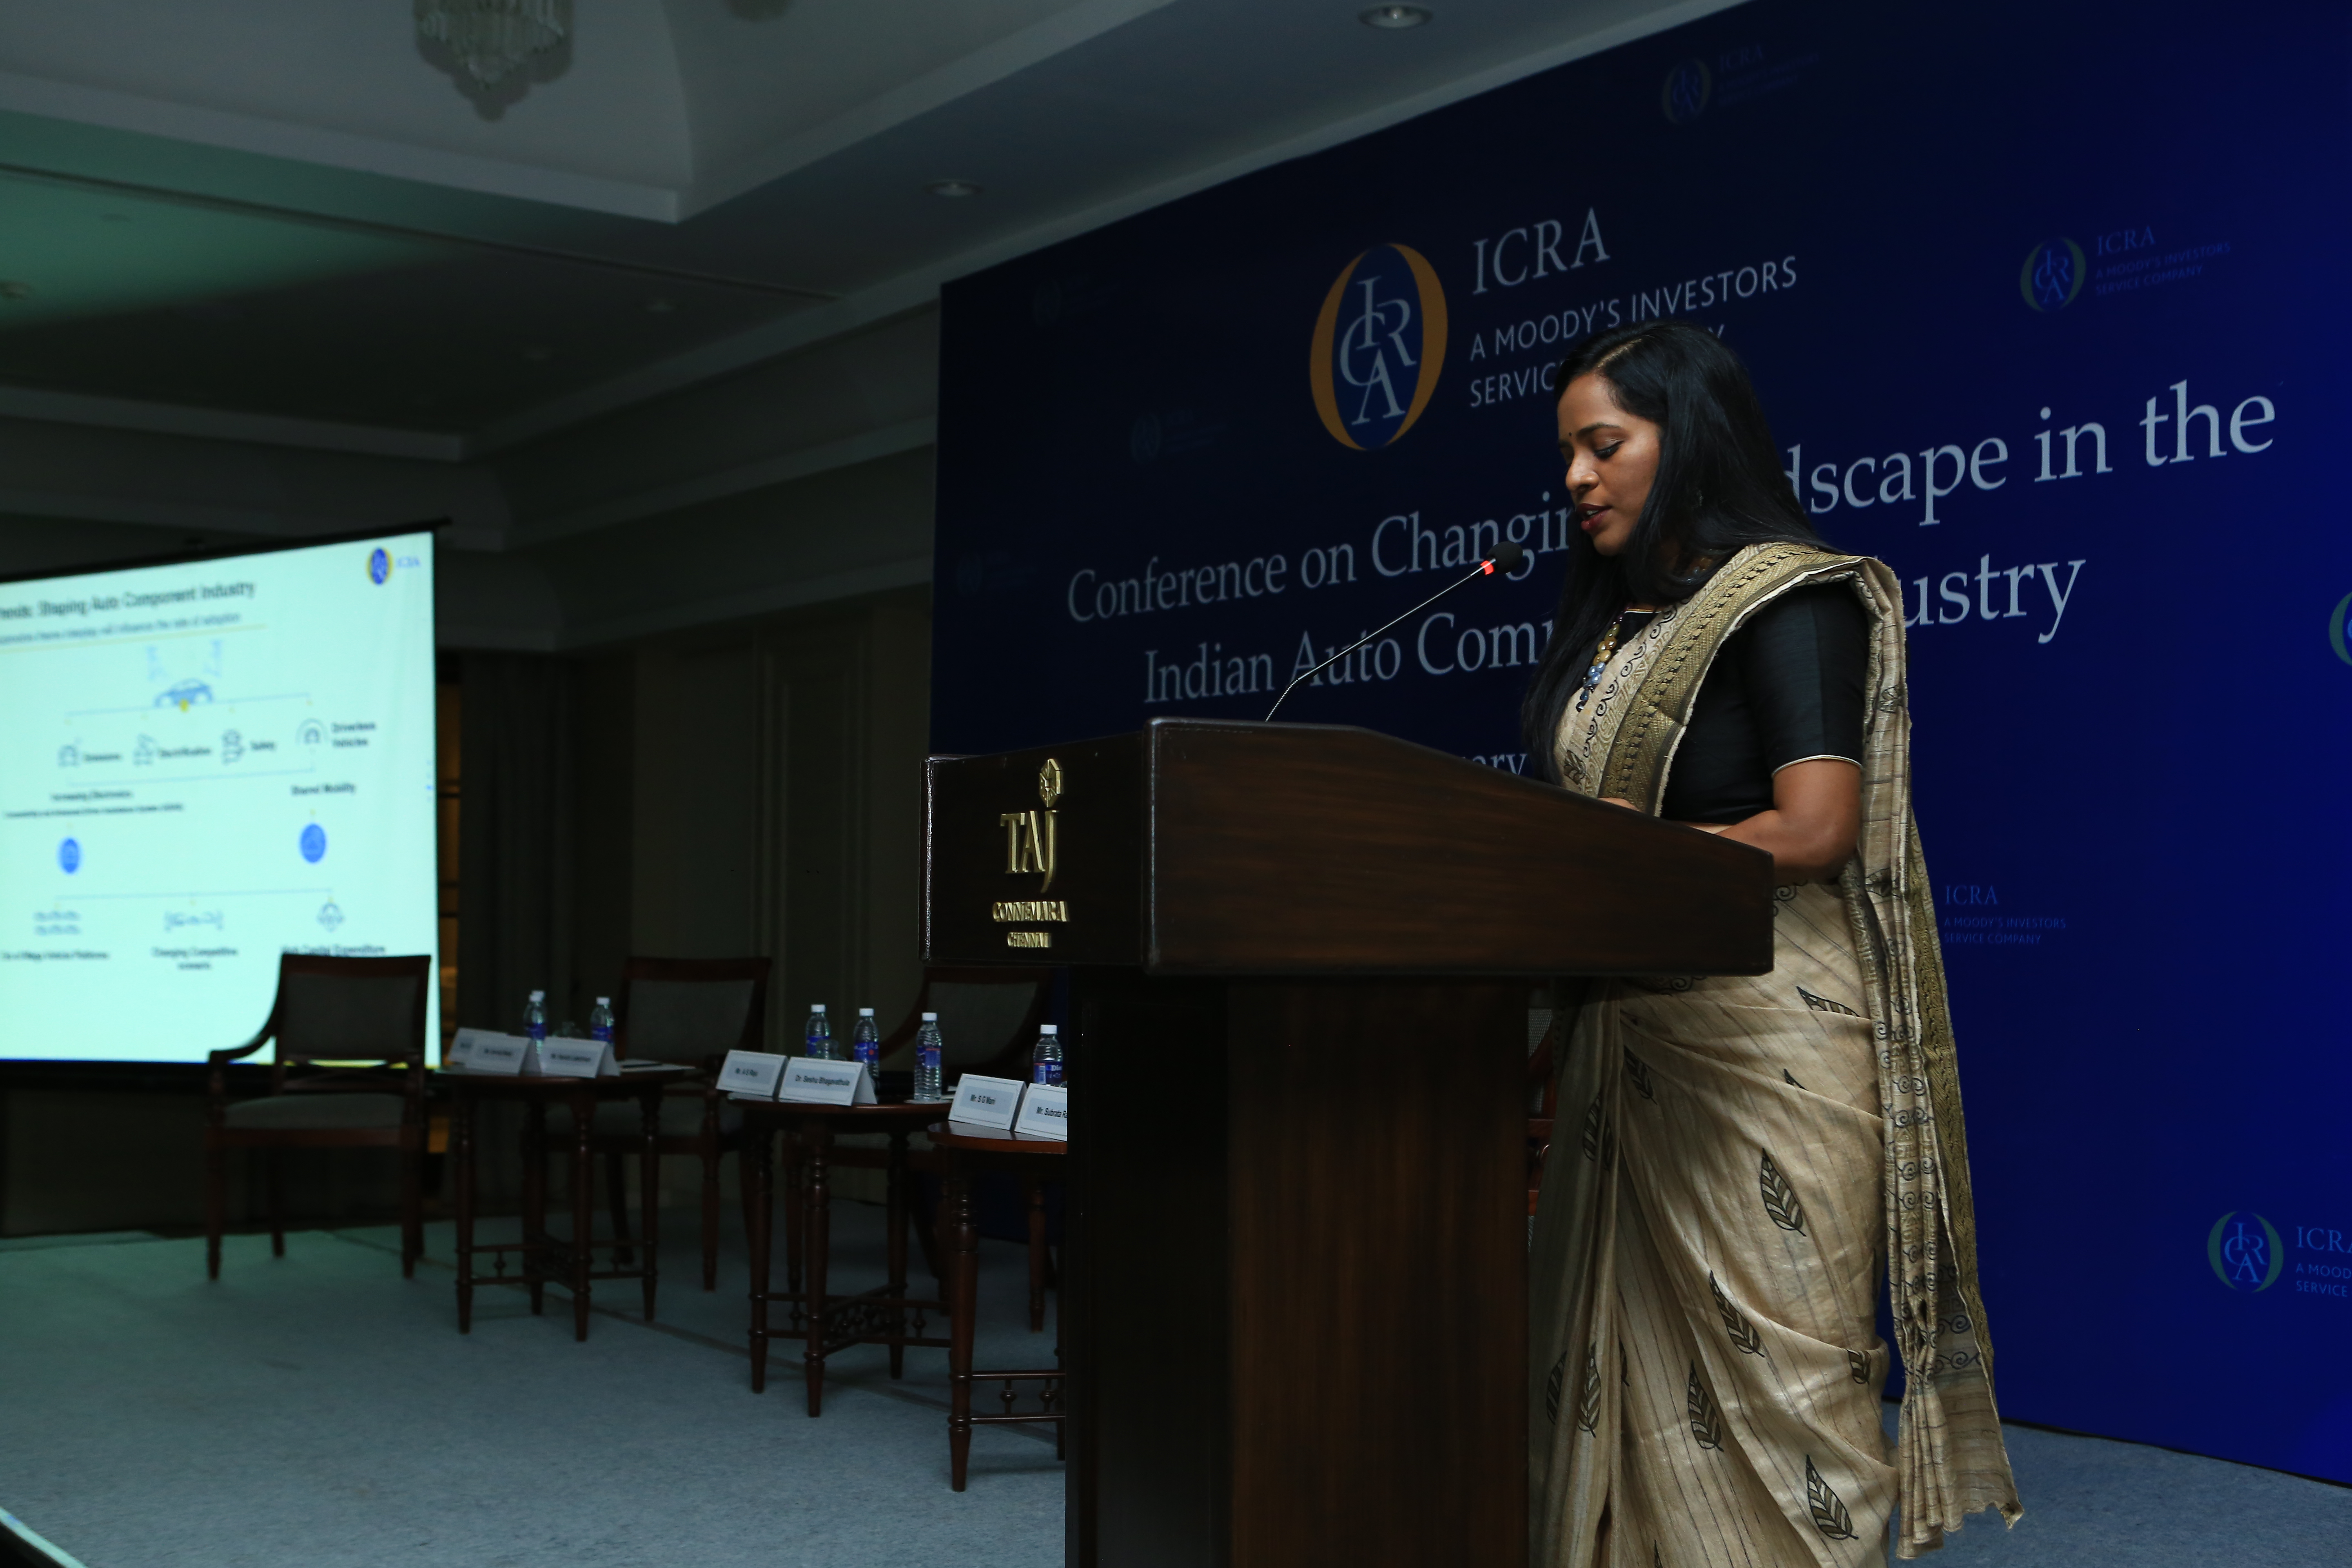 Mr. Pavethra Ponniah, Vice President & Sector Head - Corporate Ratings, ICRA shares her views on 'Changing Landscape in the Indian Auto Component Industry'